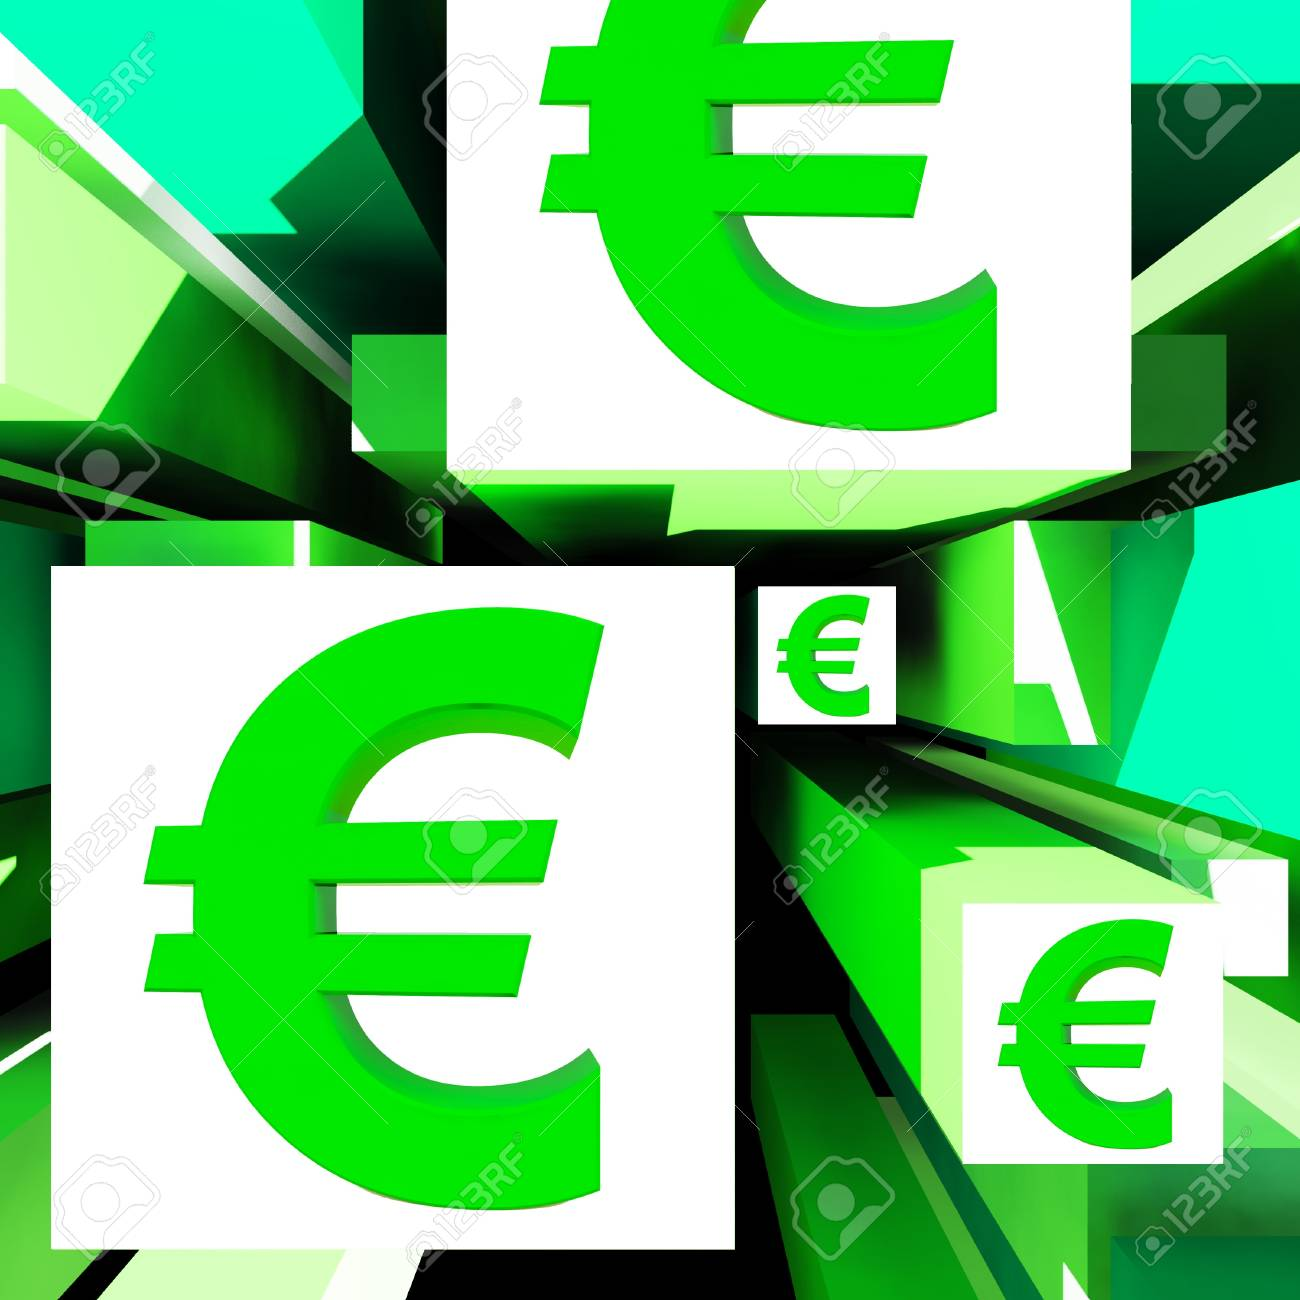 Euro Symbol On Cubes Shows European Profits And Investments Stock Photo - 18271103